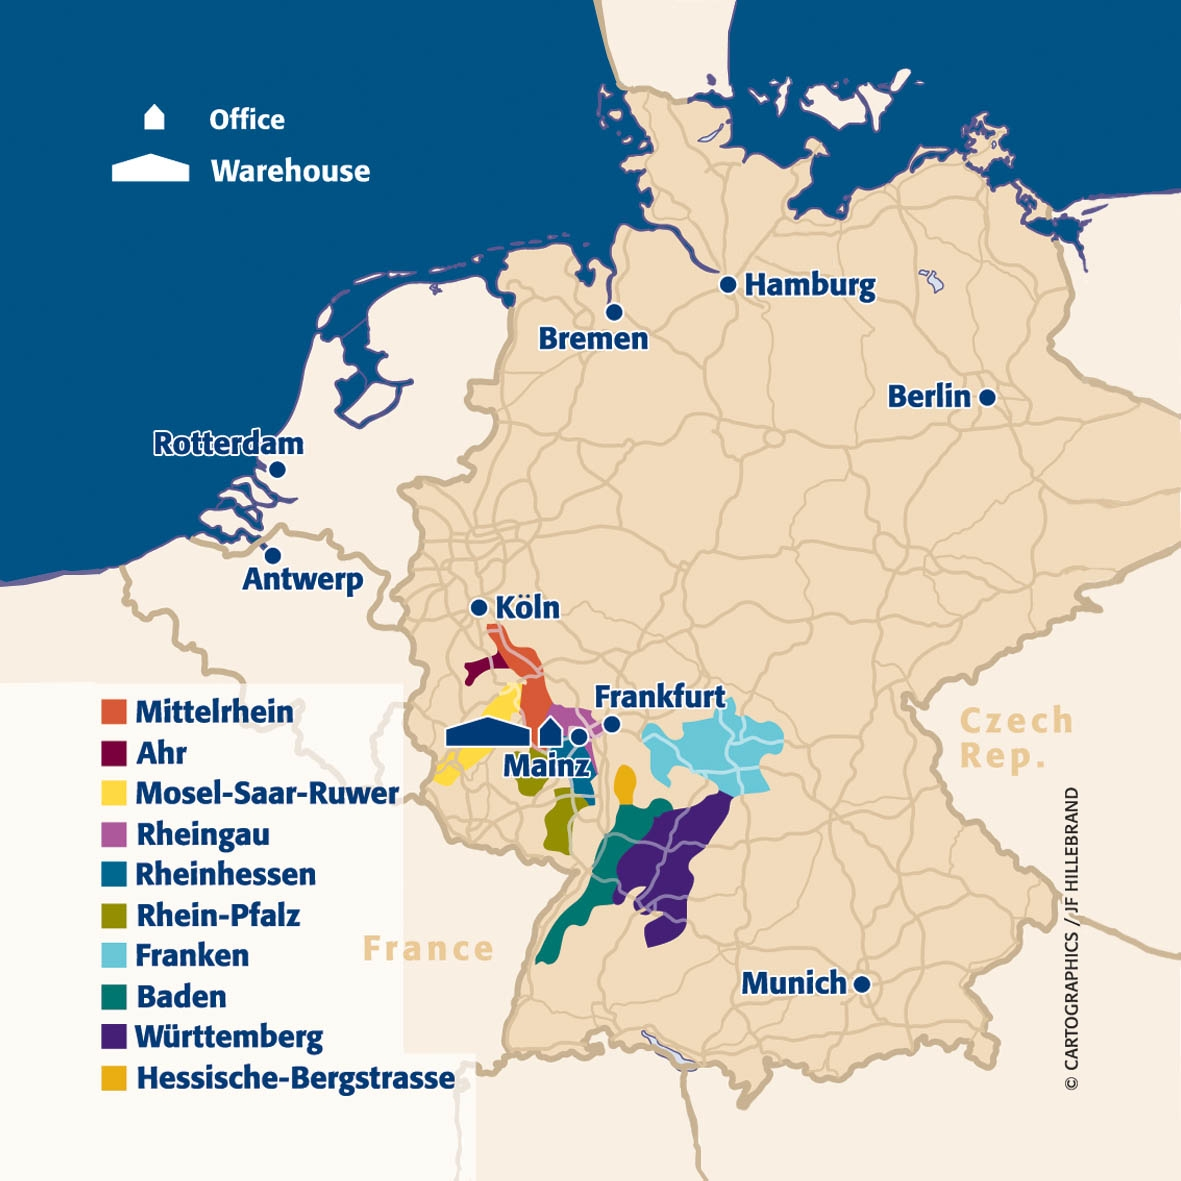 Main wine areas of Germany